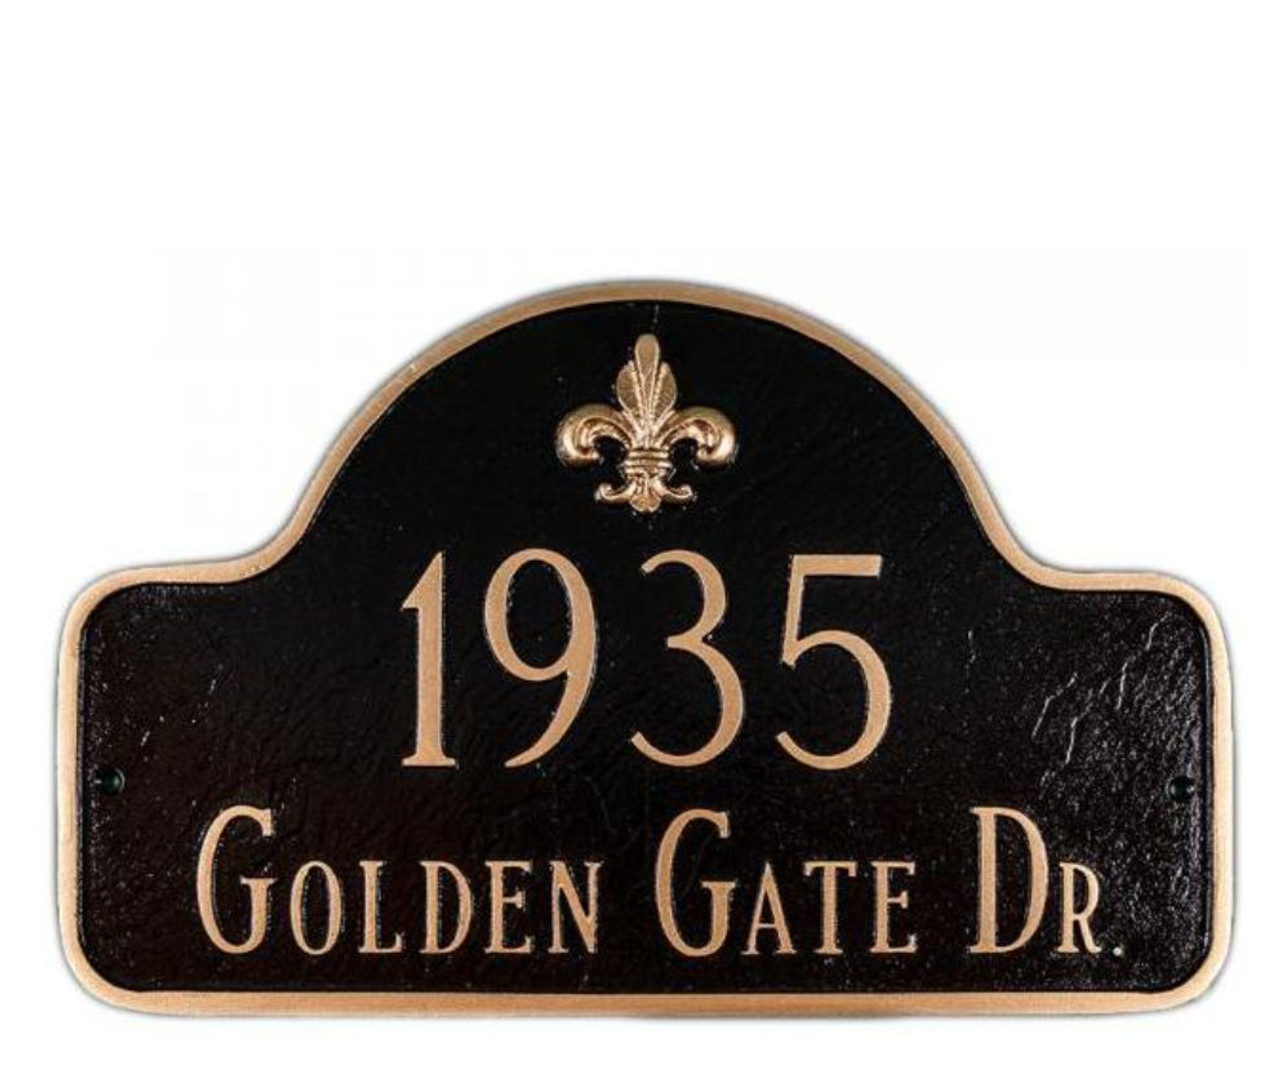 Fleur de lis Arch Address Plaque in black/gold color combination.